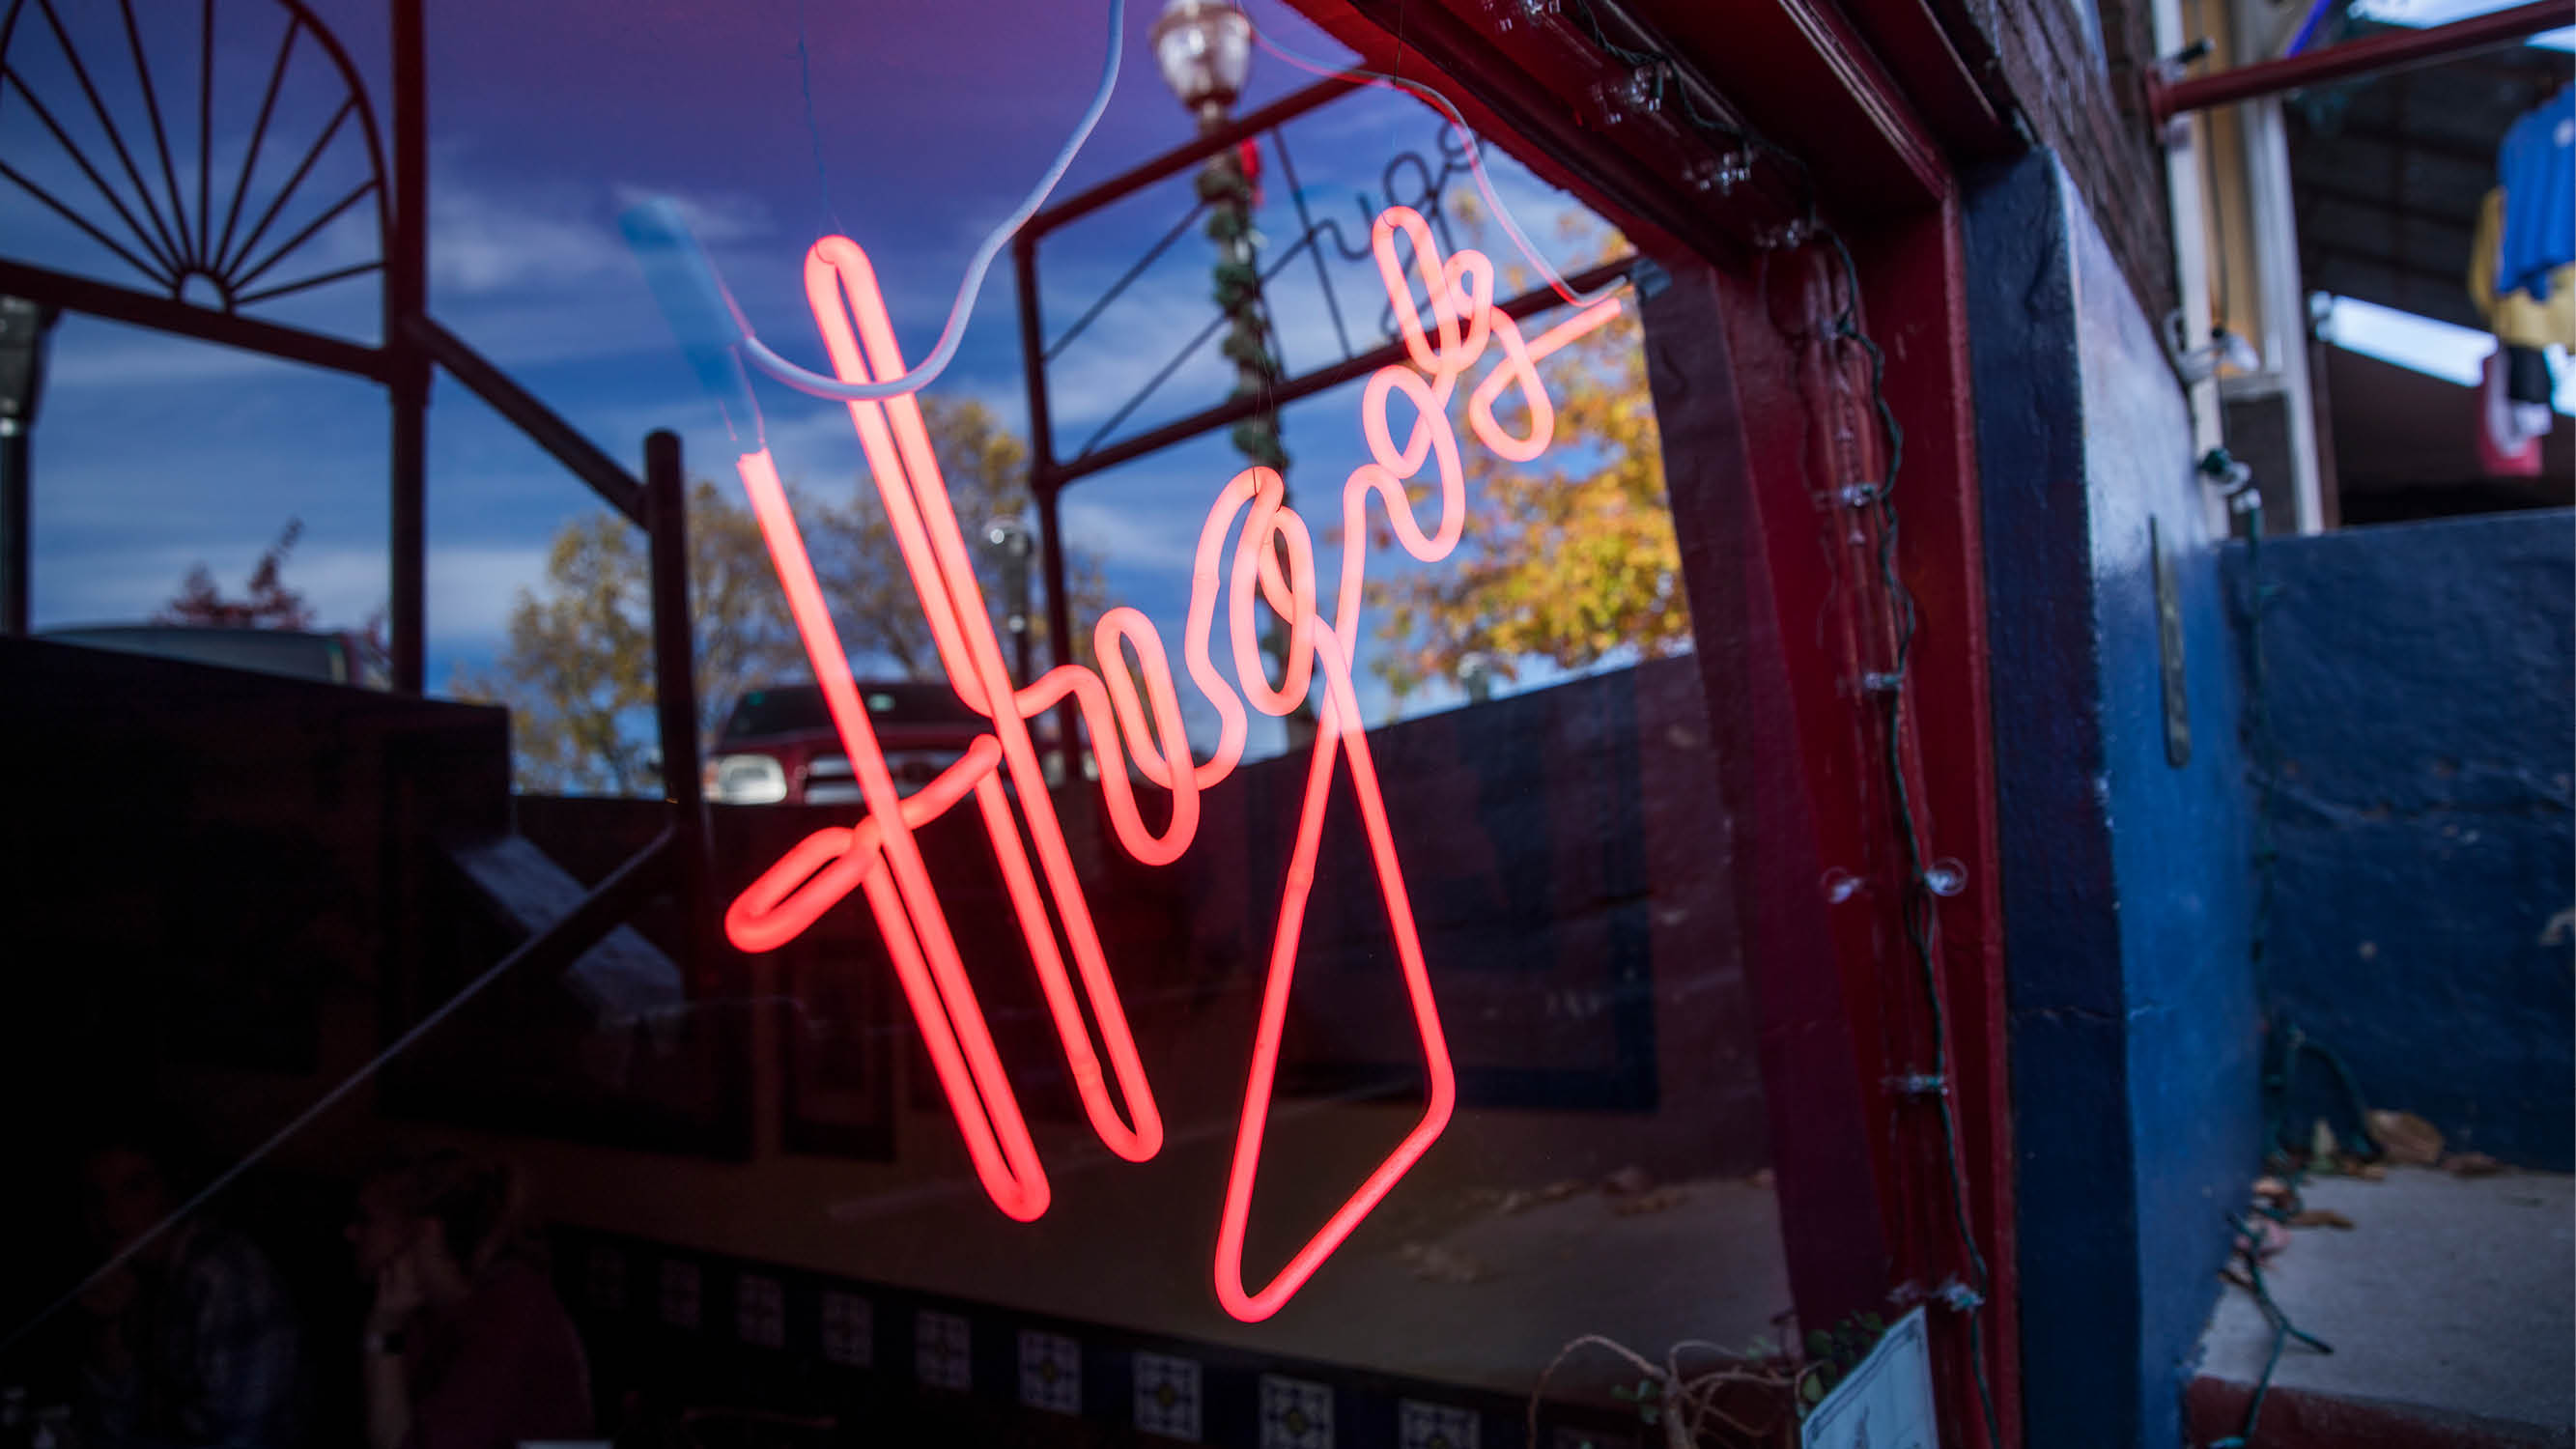 The neon sign in the front window of Hugo's near Lake Fayetteville